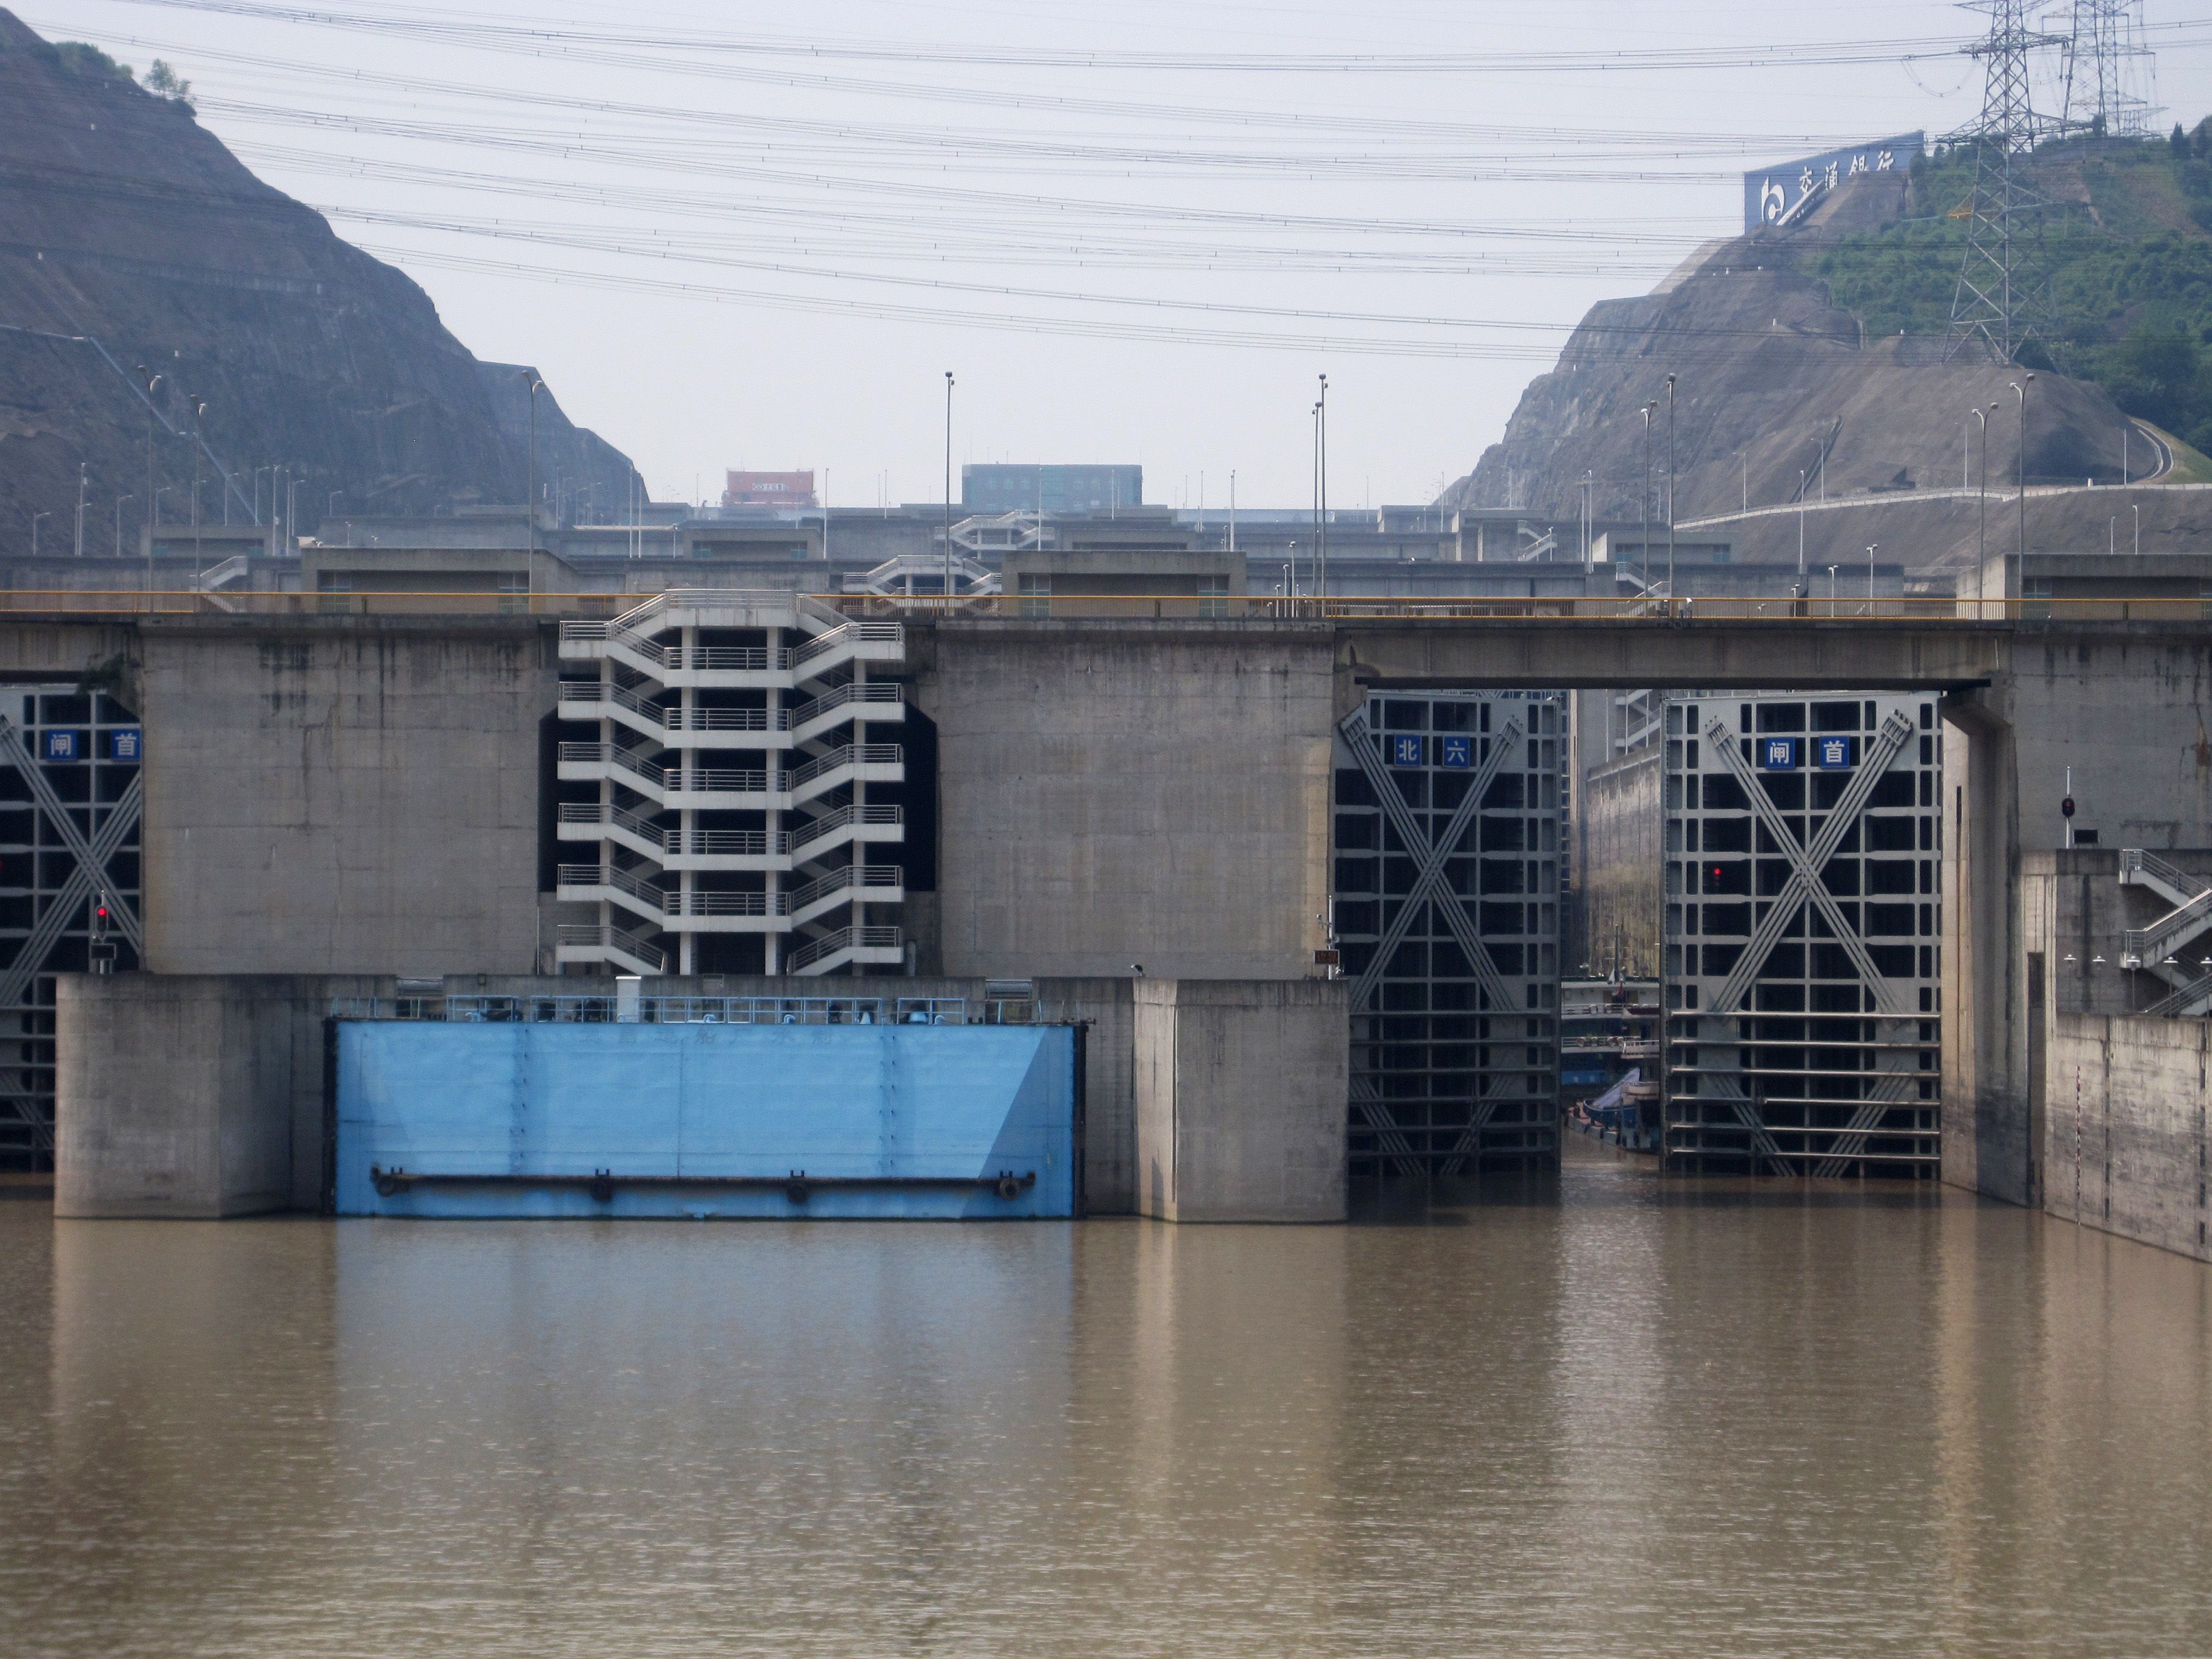 Three gorges dam project china s biggest project since the great wall - Given The Scale Of The Project And Geological Conditions The 3 Gorges Dam Is A Modern Engineering Marvel It Is A Monument To Human Ingenuity And